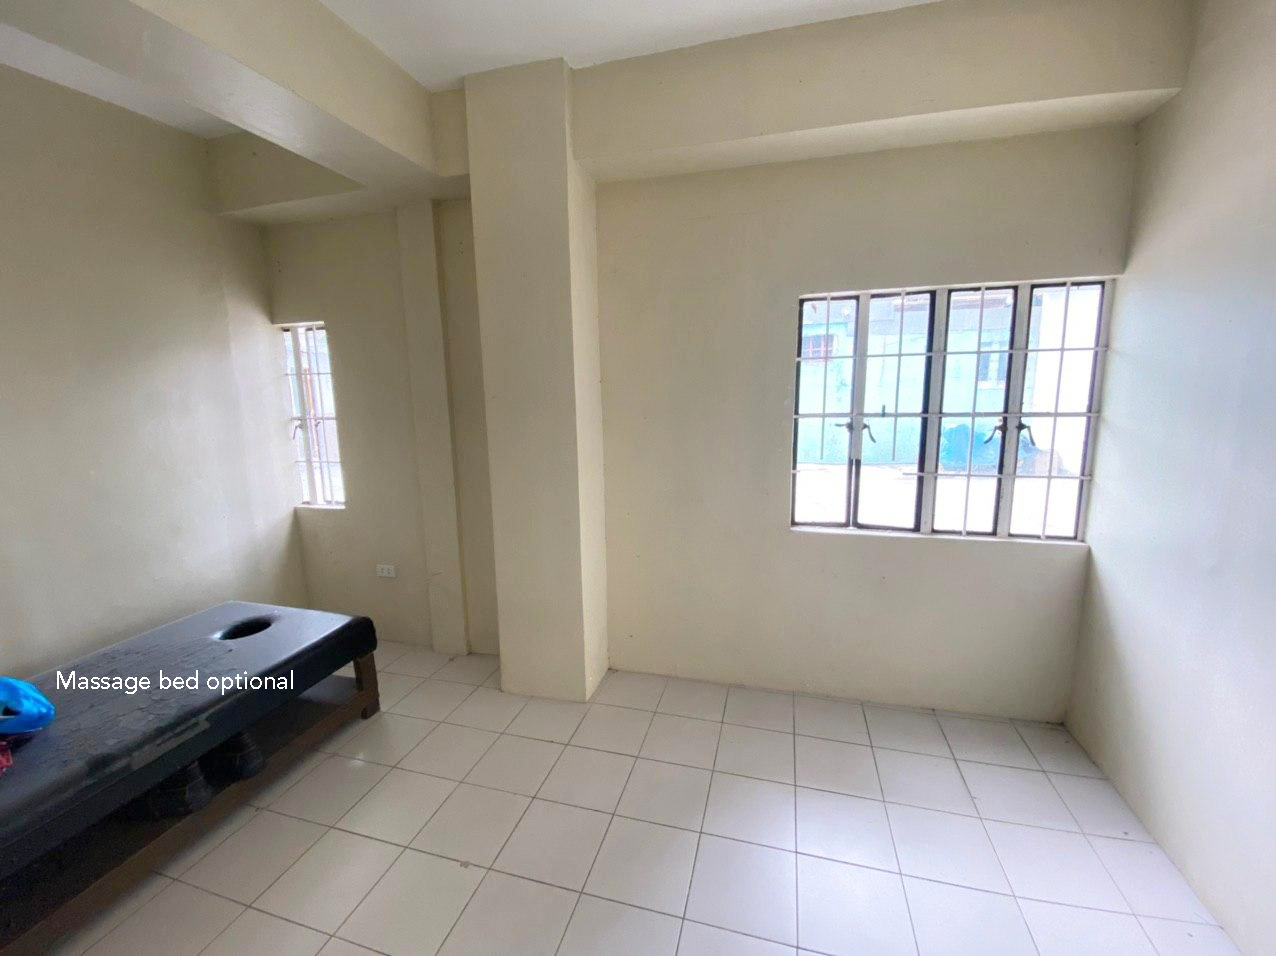 2 Bed Room Apartment Unit for Rent in San Fernando Pampanga